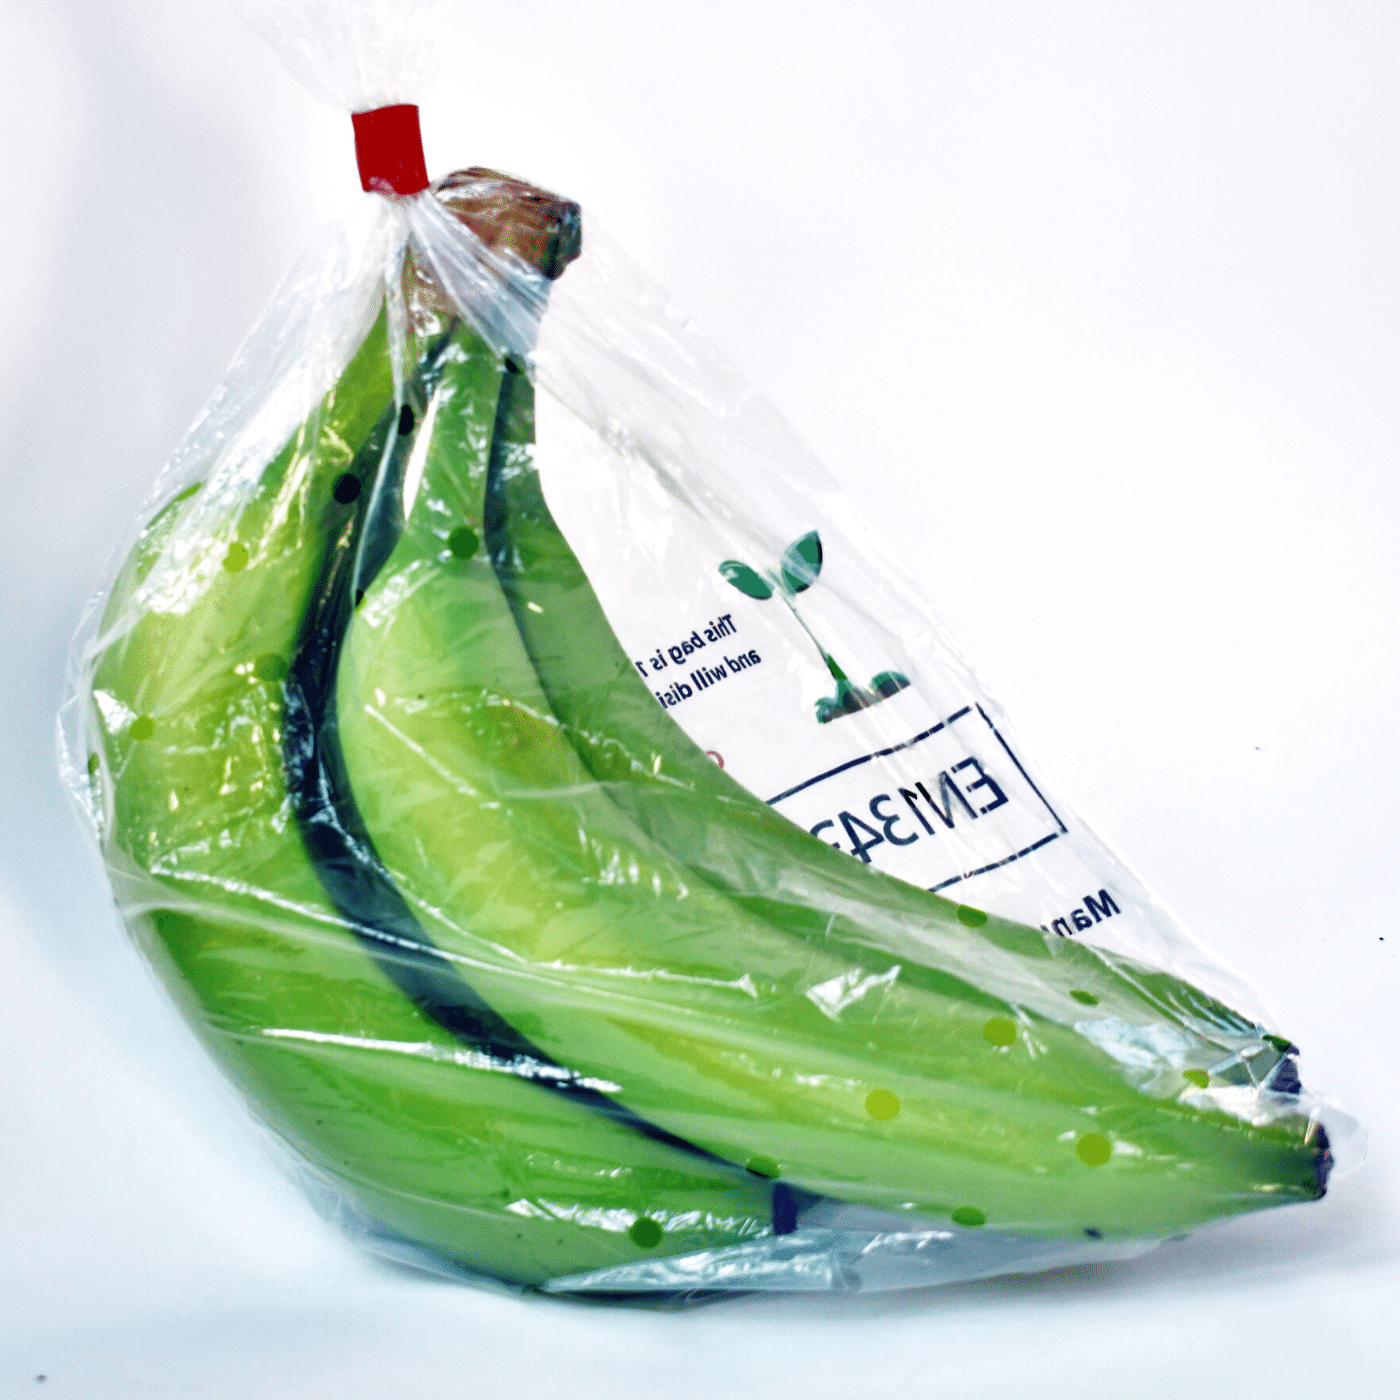 Biodegradable and Compostable Packaging